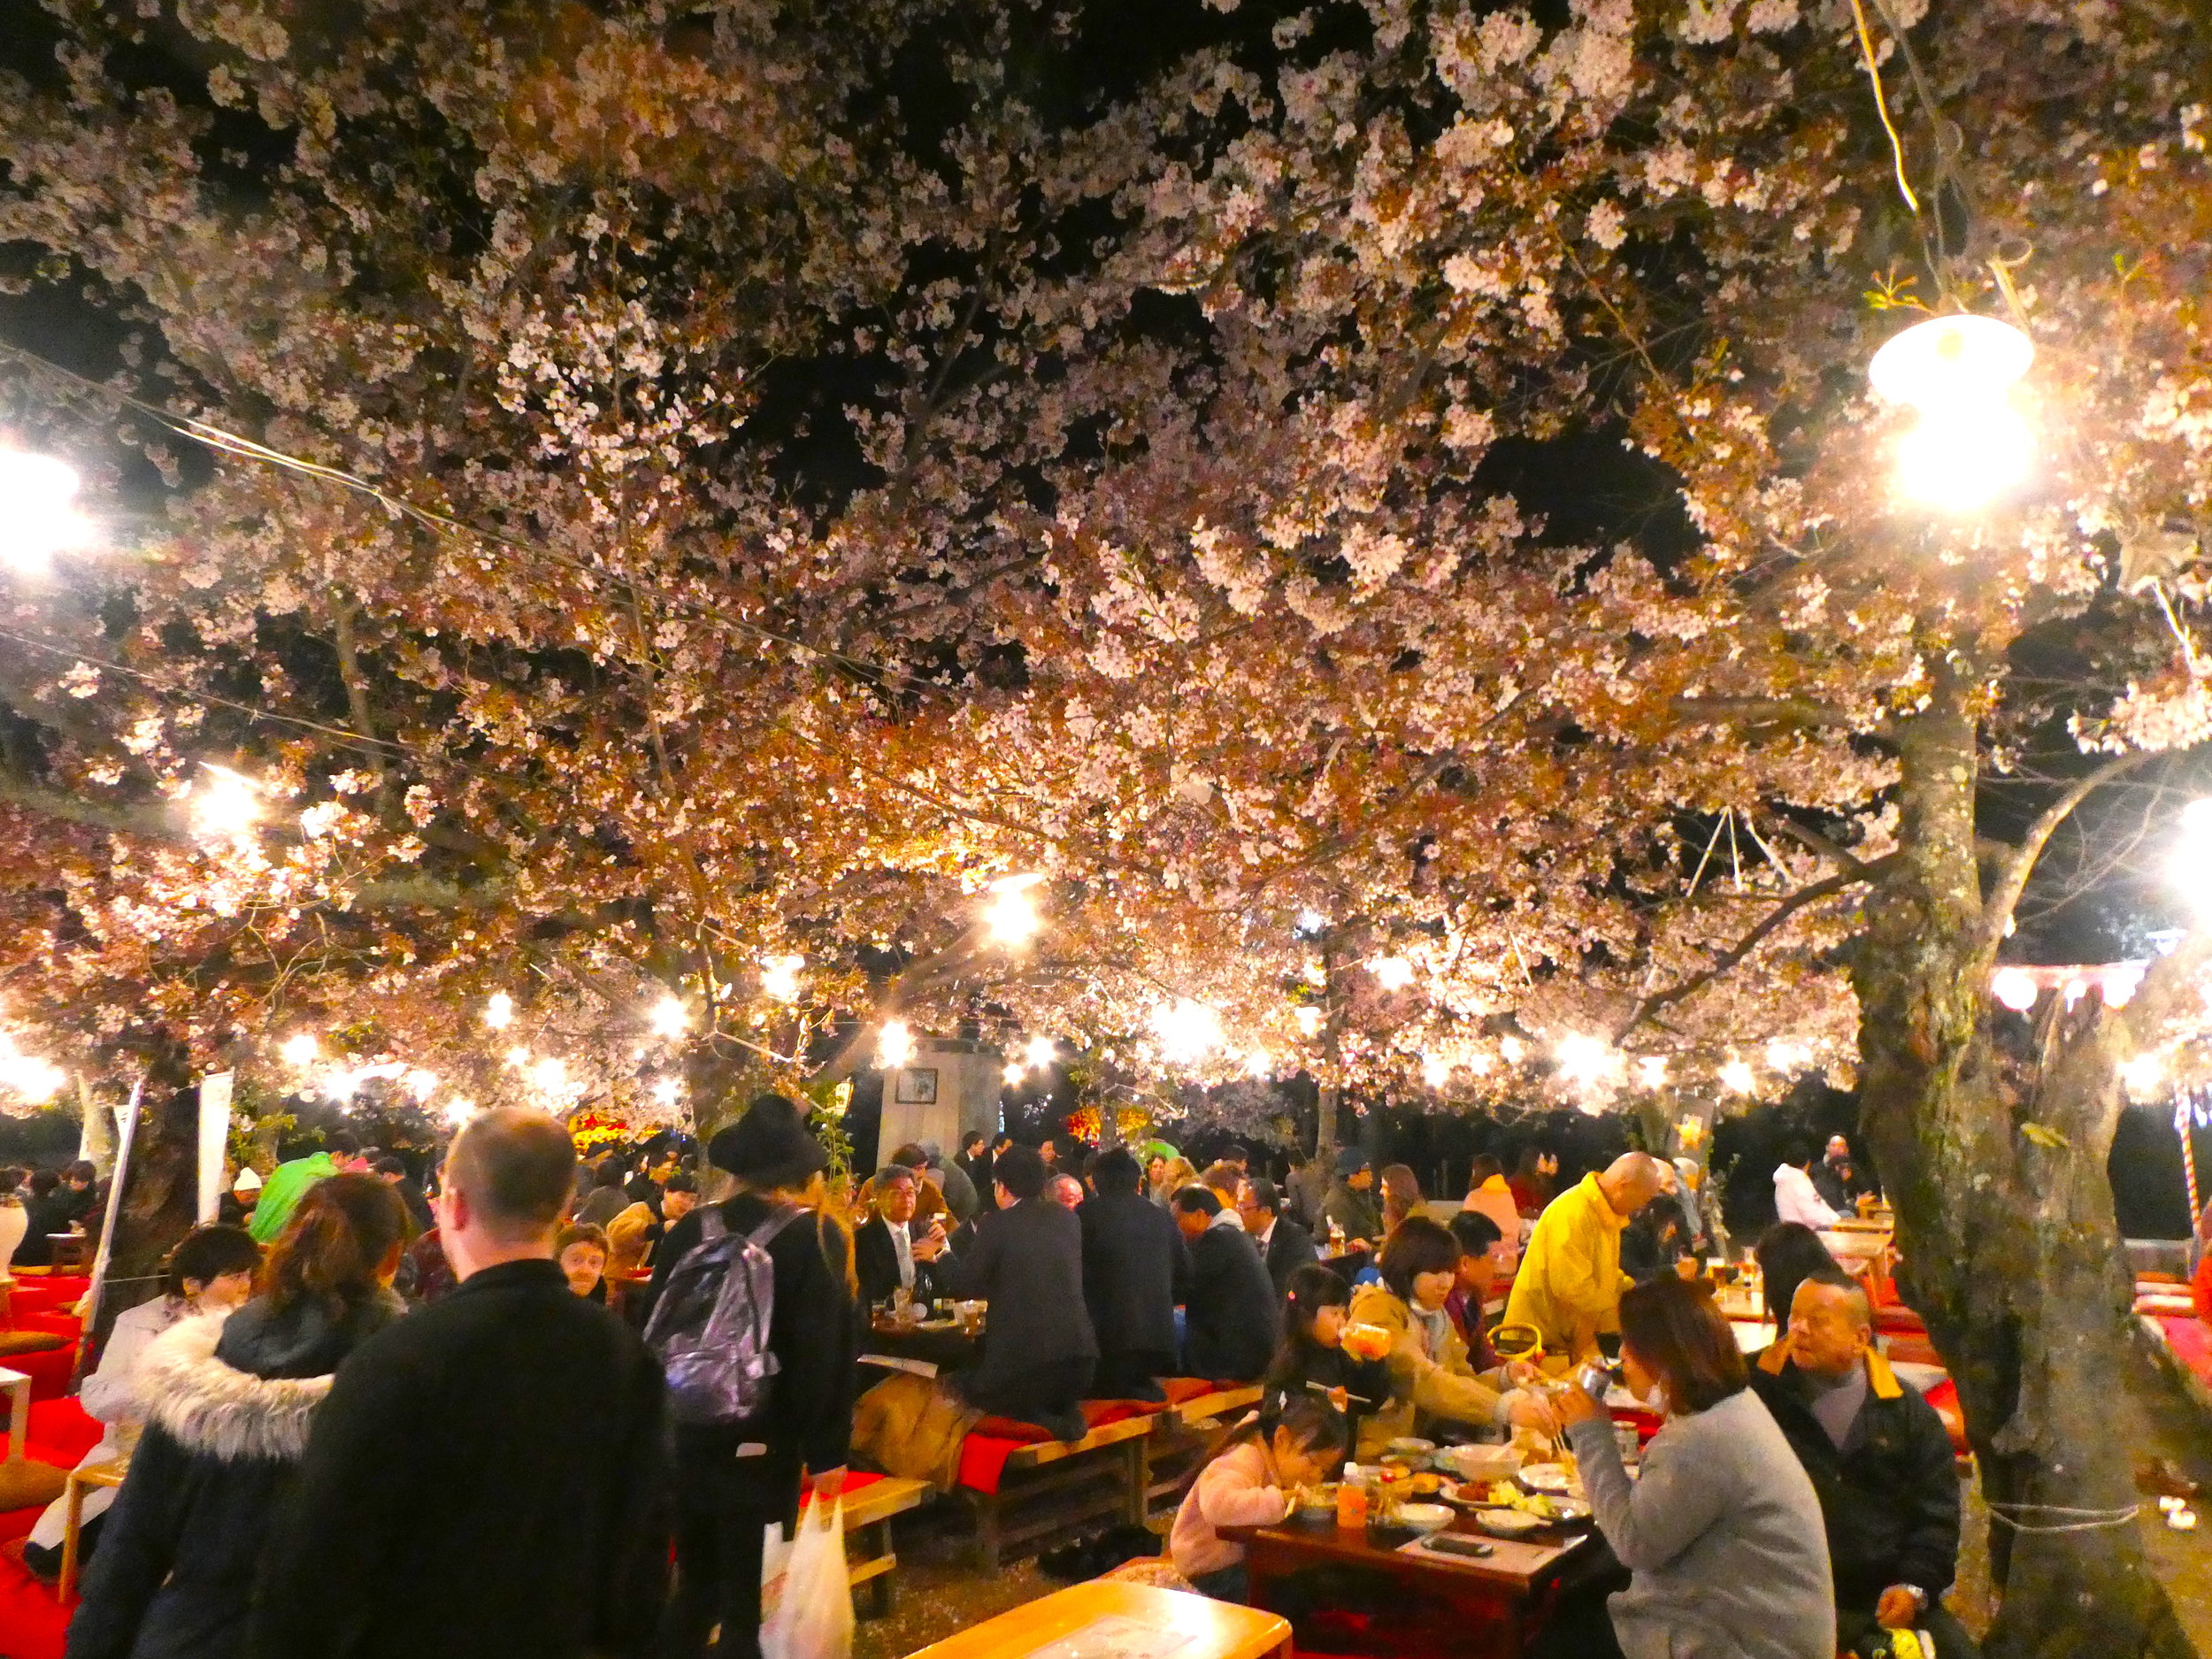 During cherry blossom time, many impromptu beer gardens spring up beneath the blossoms.